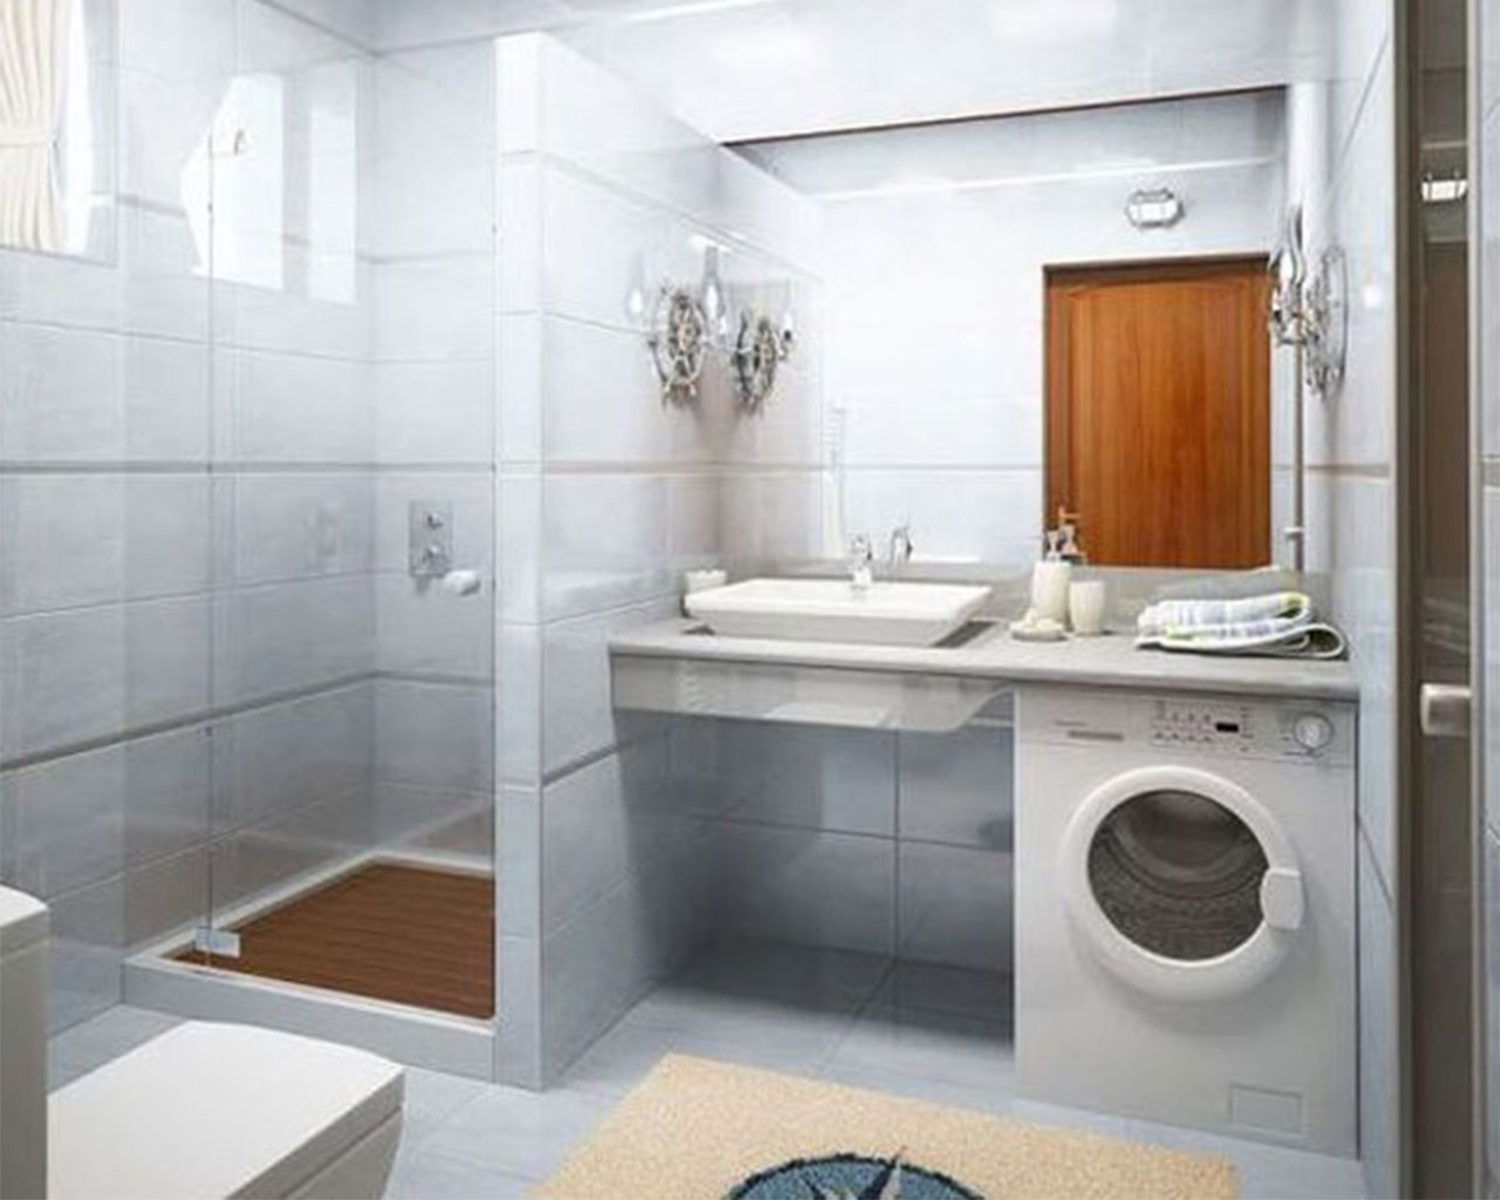 bathroom designs pictures. Simple Bathroom Design Idea With Washing Machine Designs Pictures